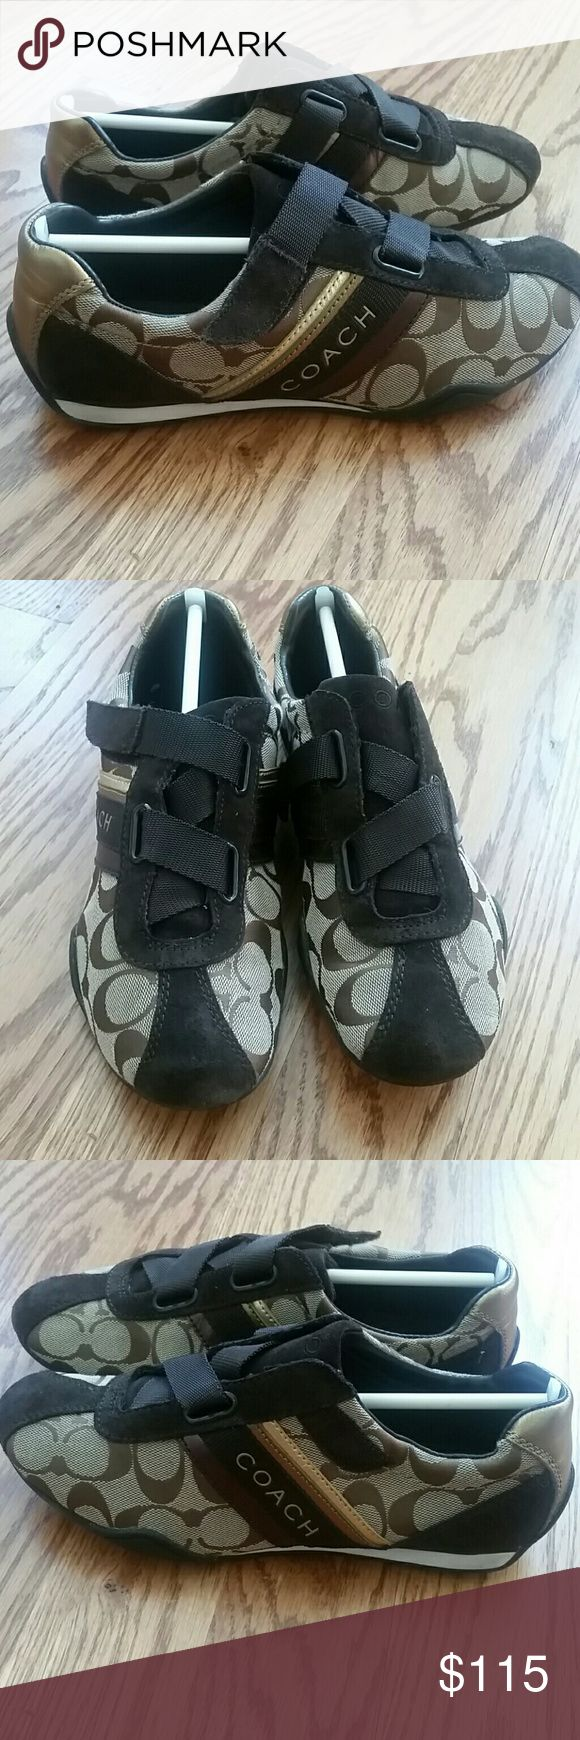 Coach tennis shoes Beautiful authentic Coach tennis shoes. Worn maybe once. No box, sorry! Coach Shoes Sneakers